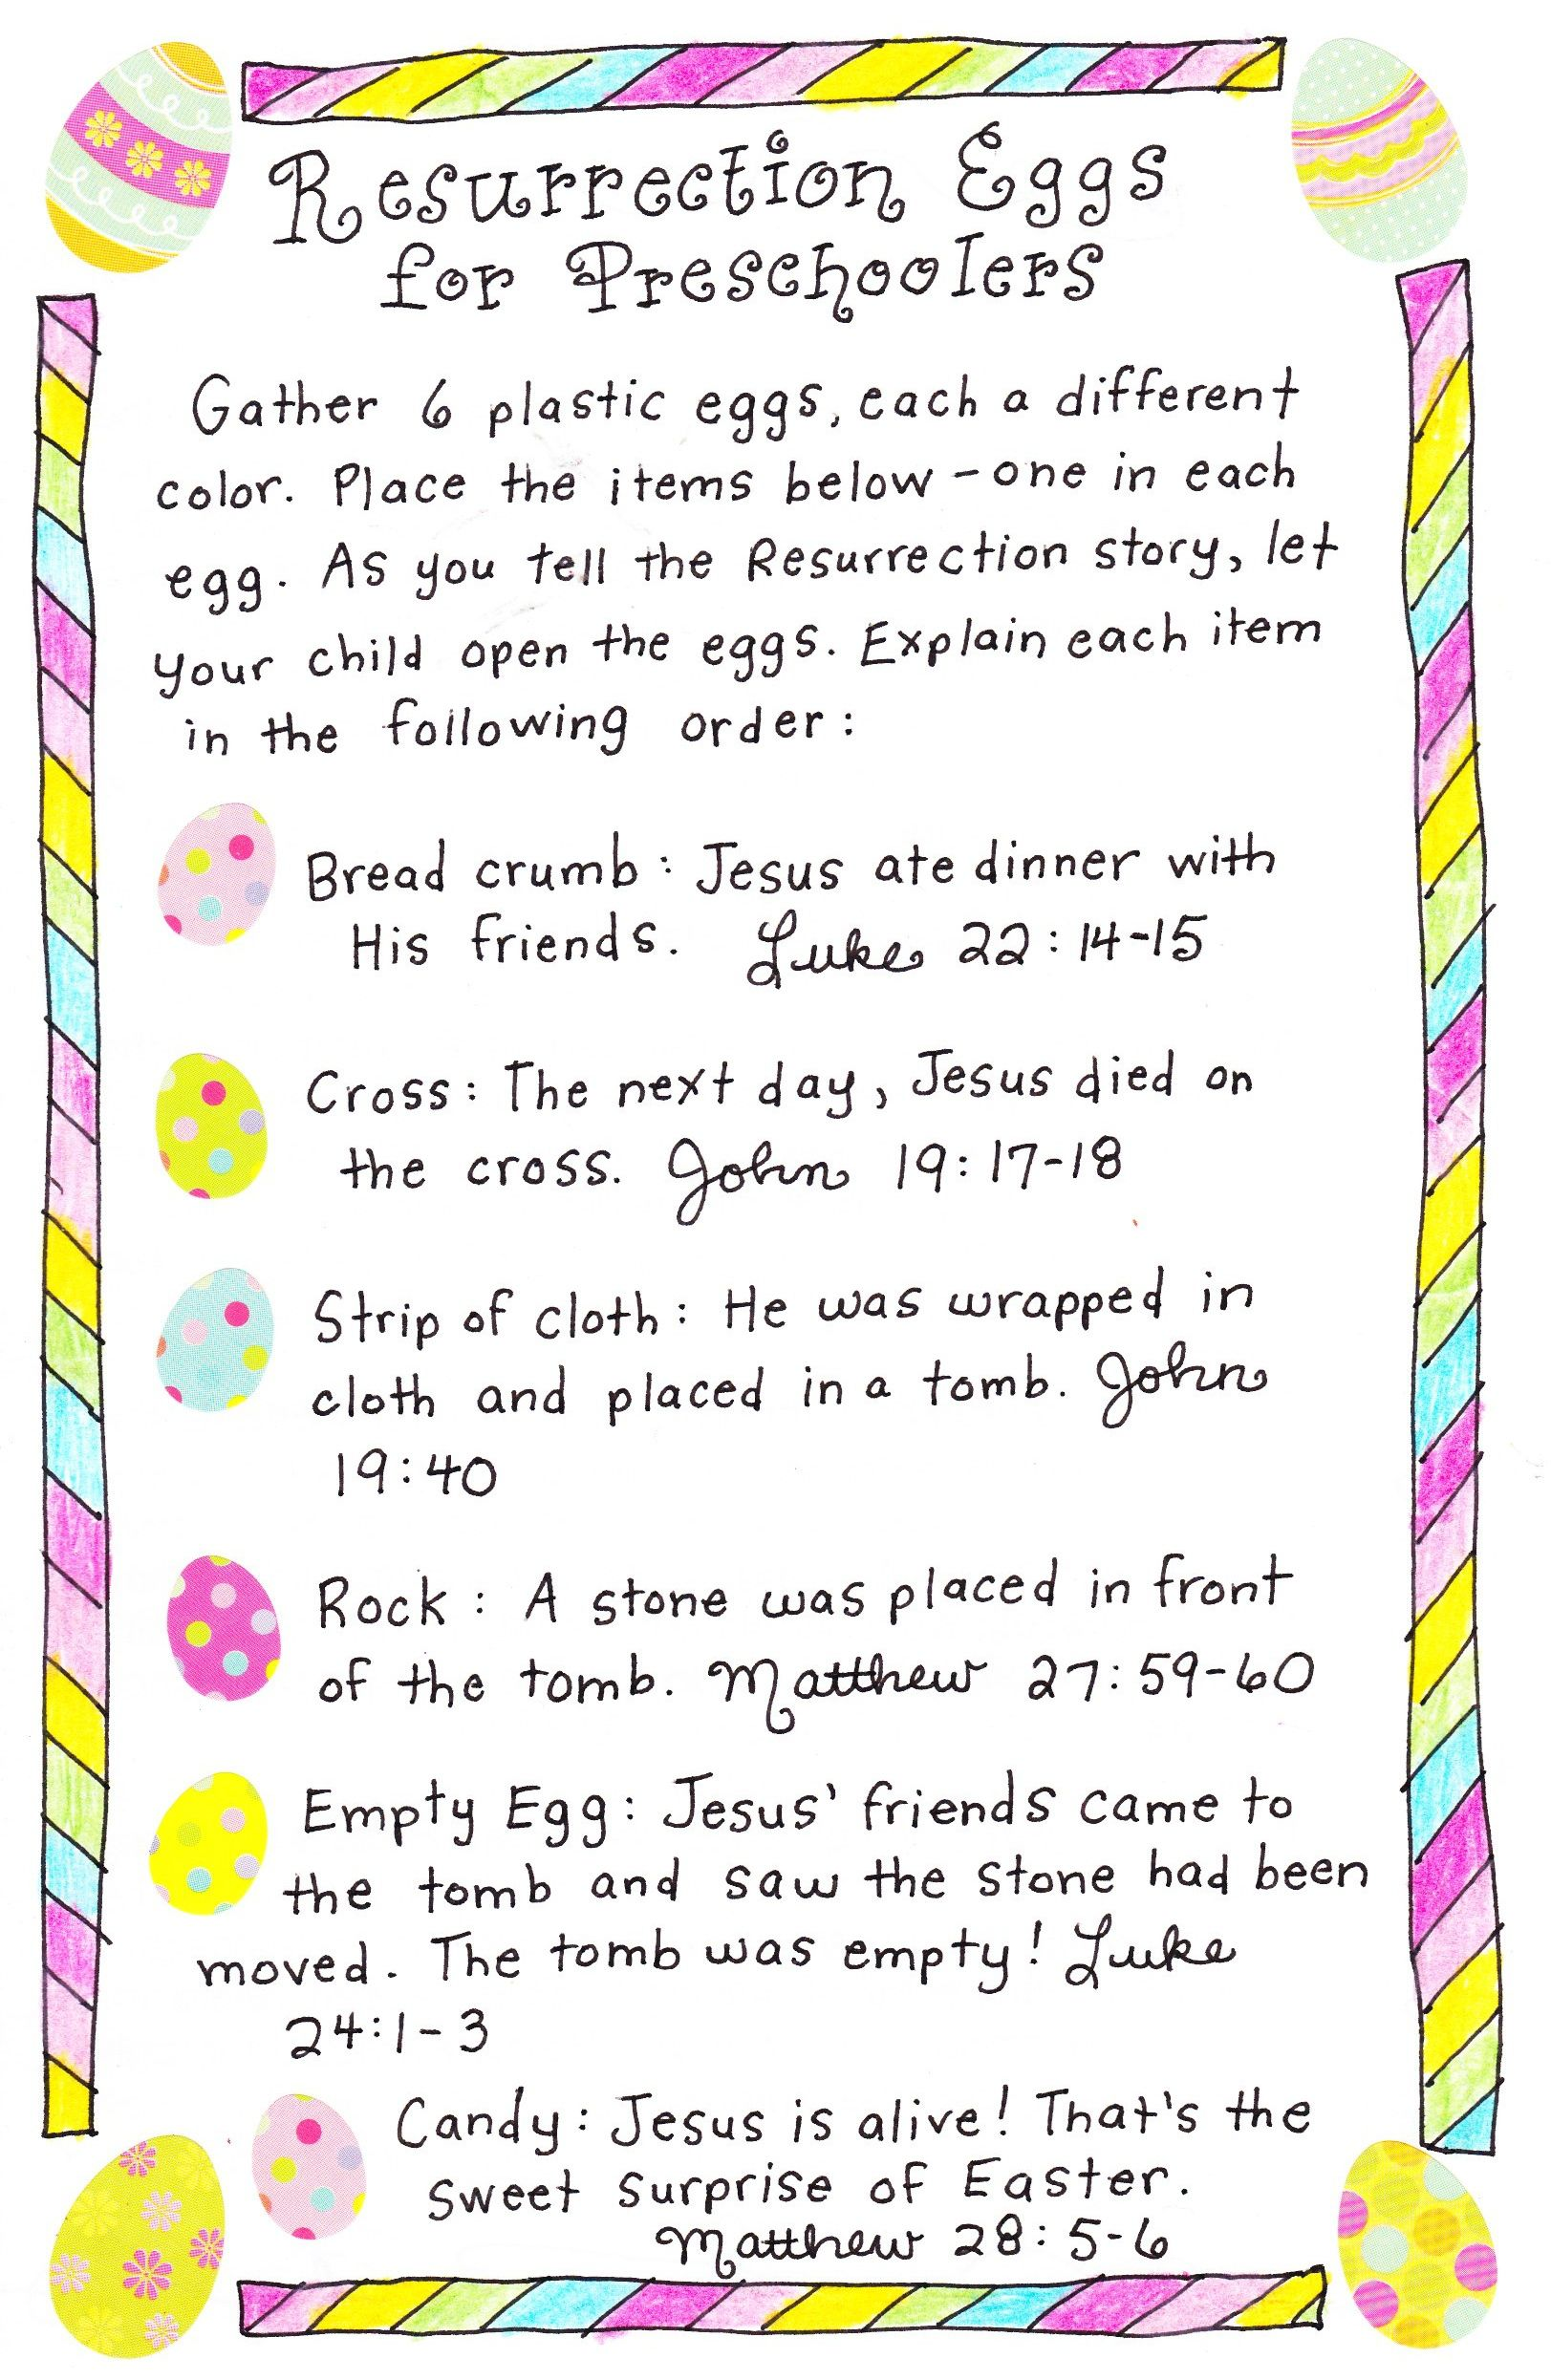 How to explain to a child what Easter is